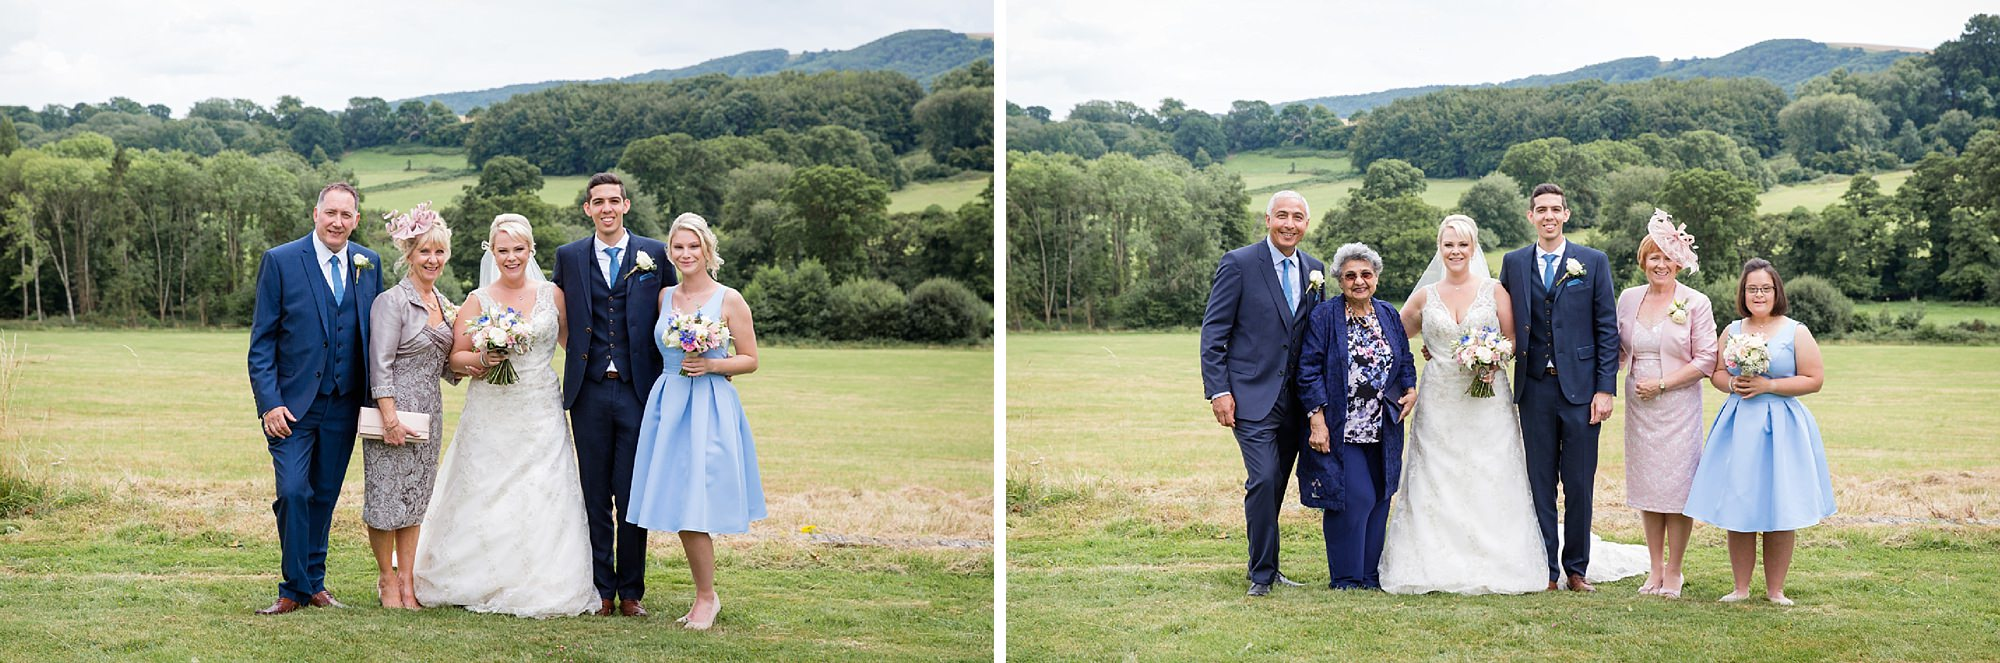 Bignor Park wedding photography family photos